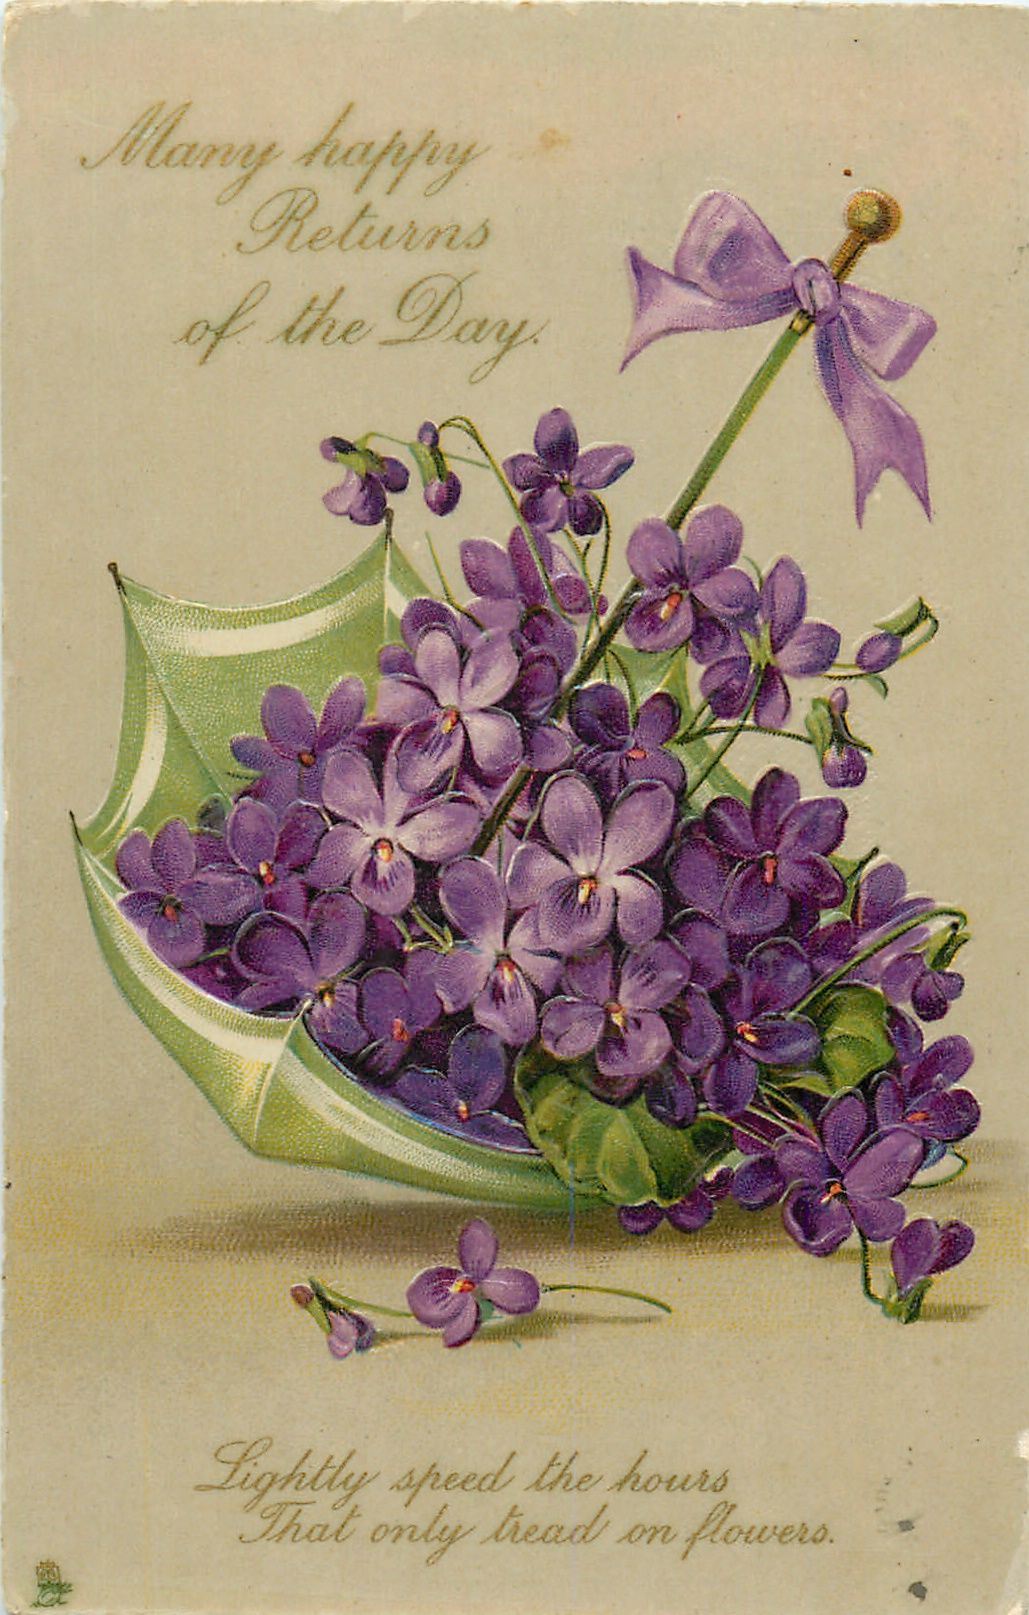 MANY HAPPY RETURNS OF THE DAY Vintage flowers, Vintage